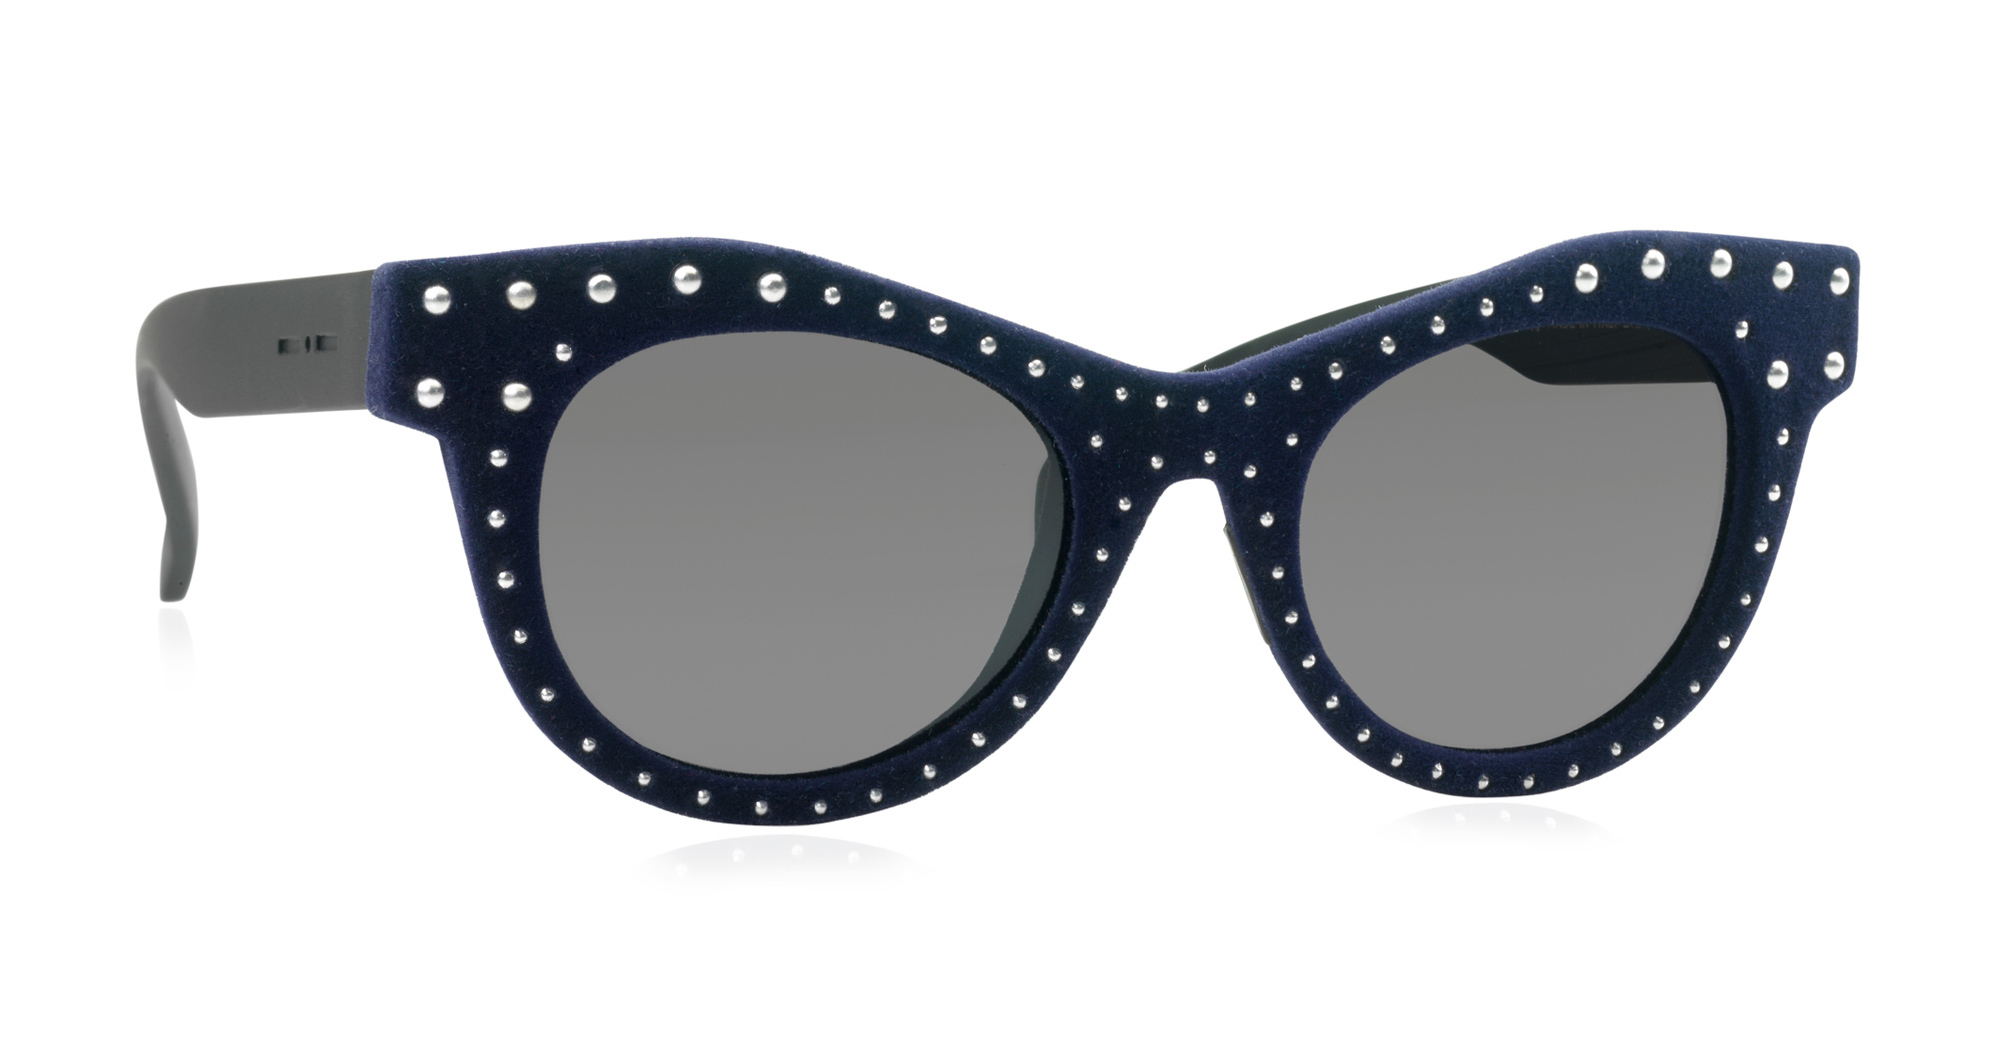 Eshop Italia Independent - Buy Glasses Online, Clothes and Made in Italy Fashion | I-I